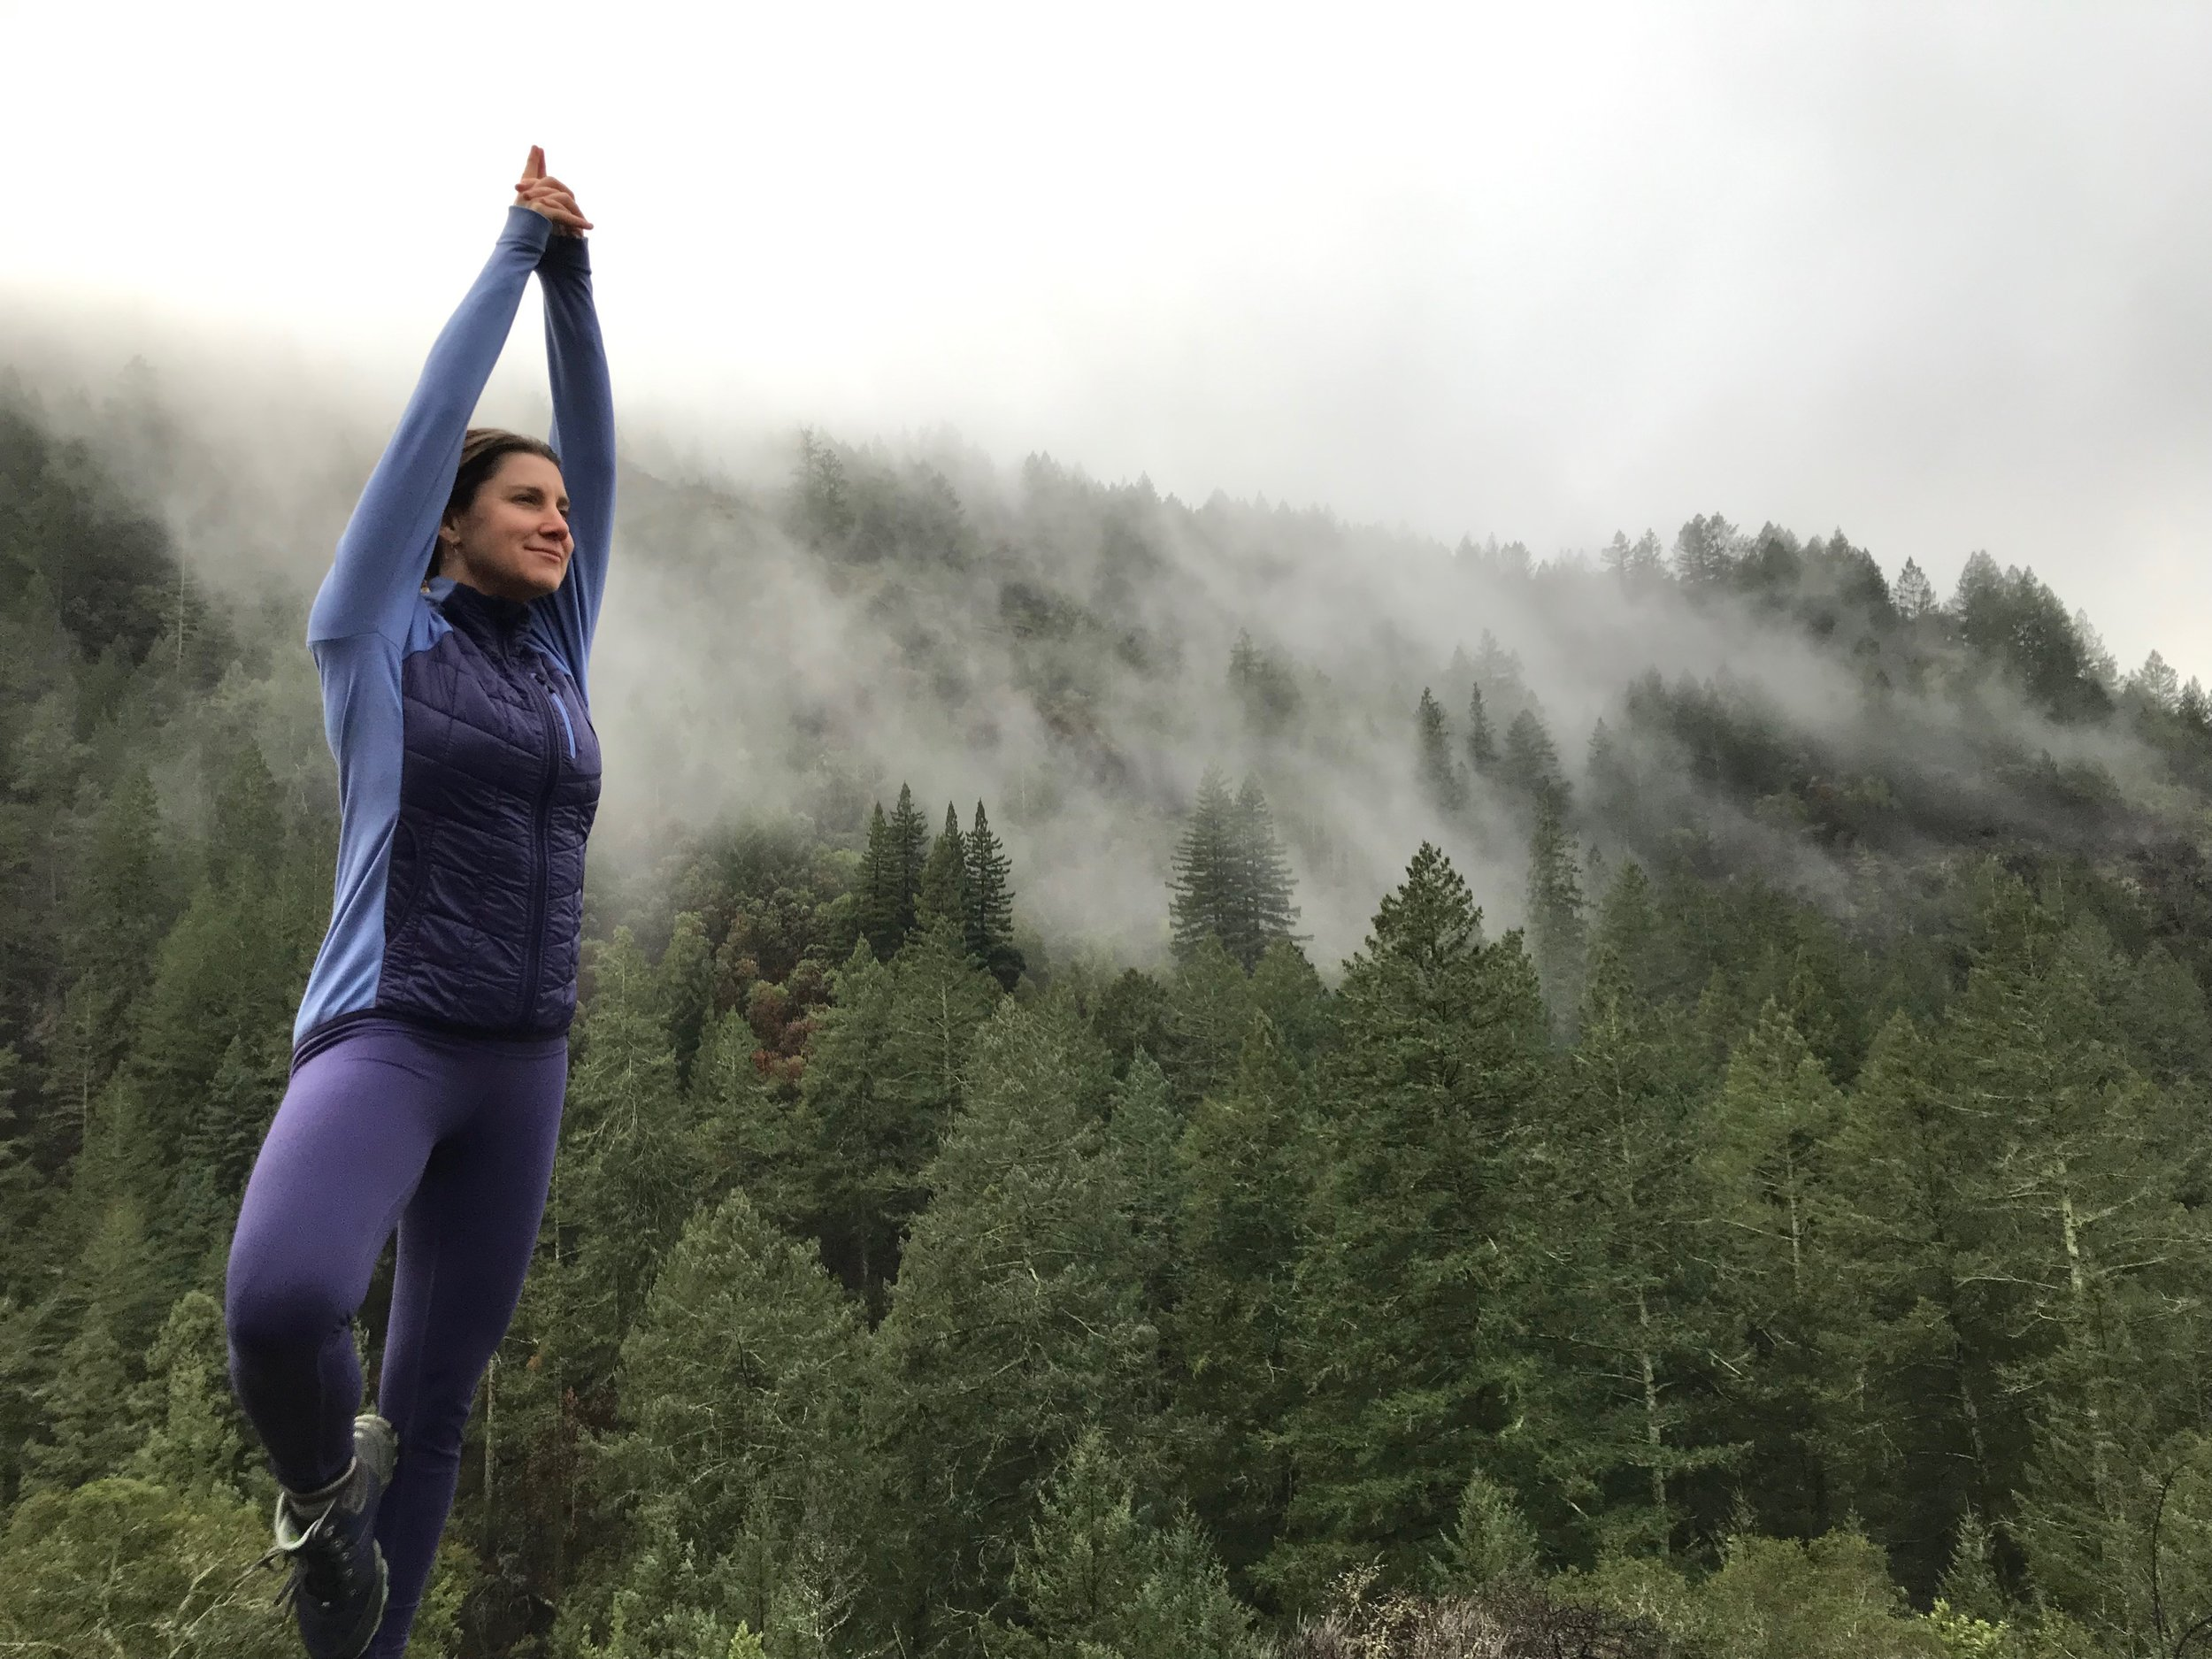 Tree pose in…well, look around!